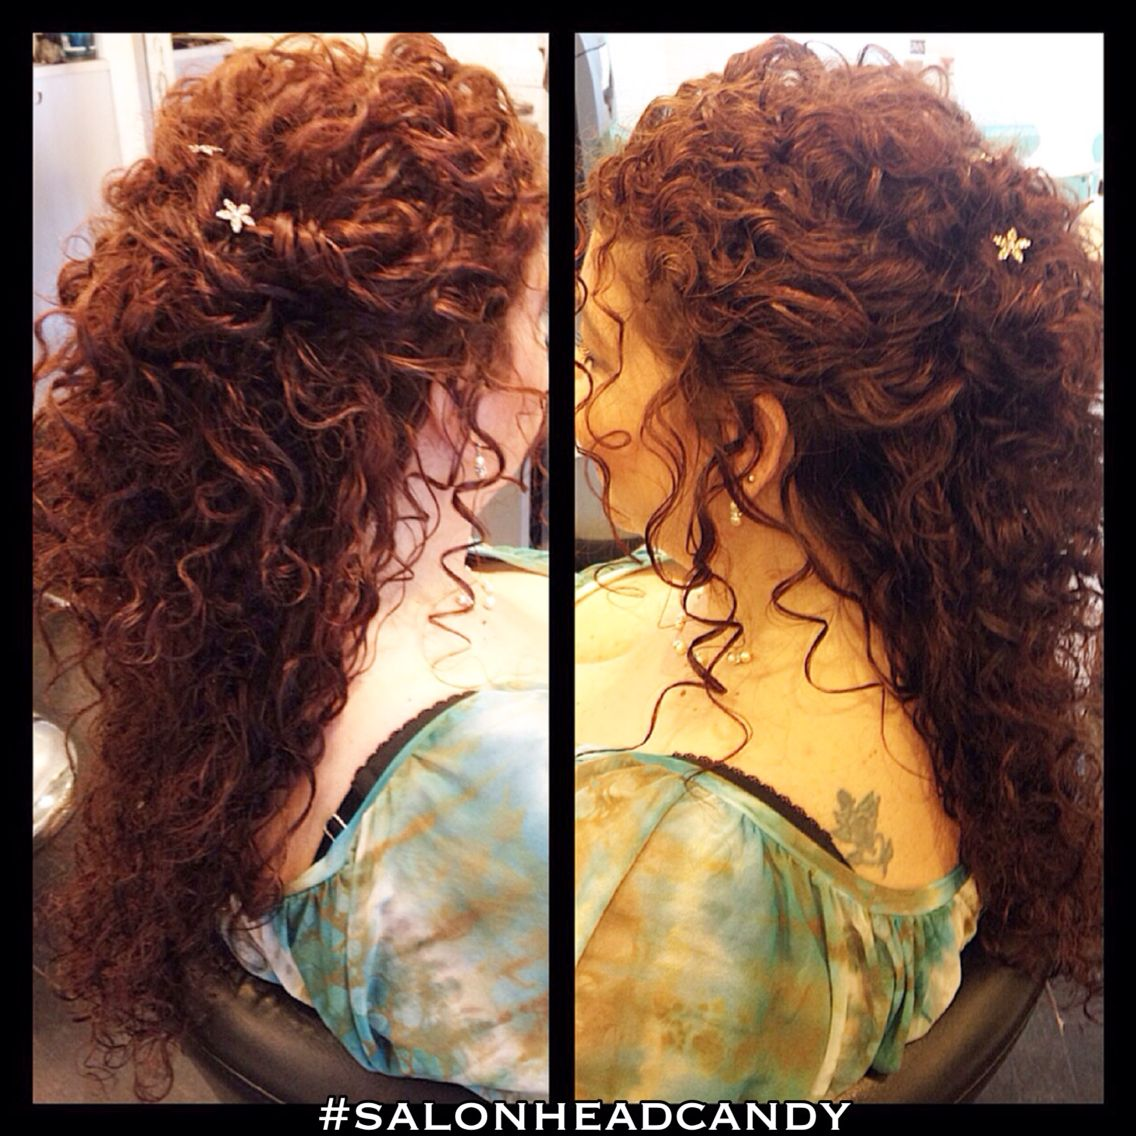 Naturally Curly Wedding Hair: Curly Wedding Hair, Curly Hair Updo